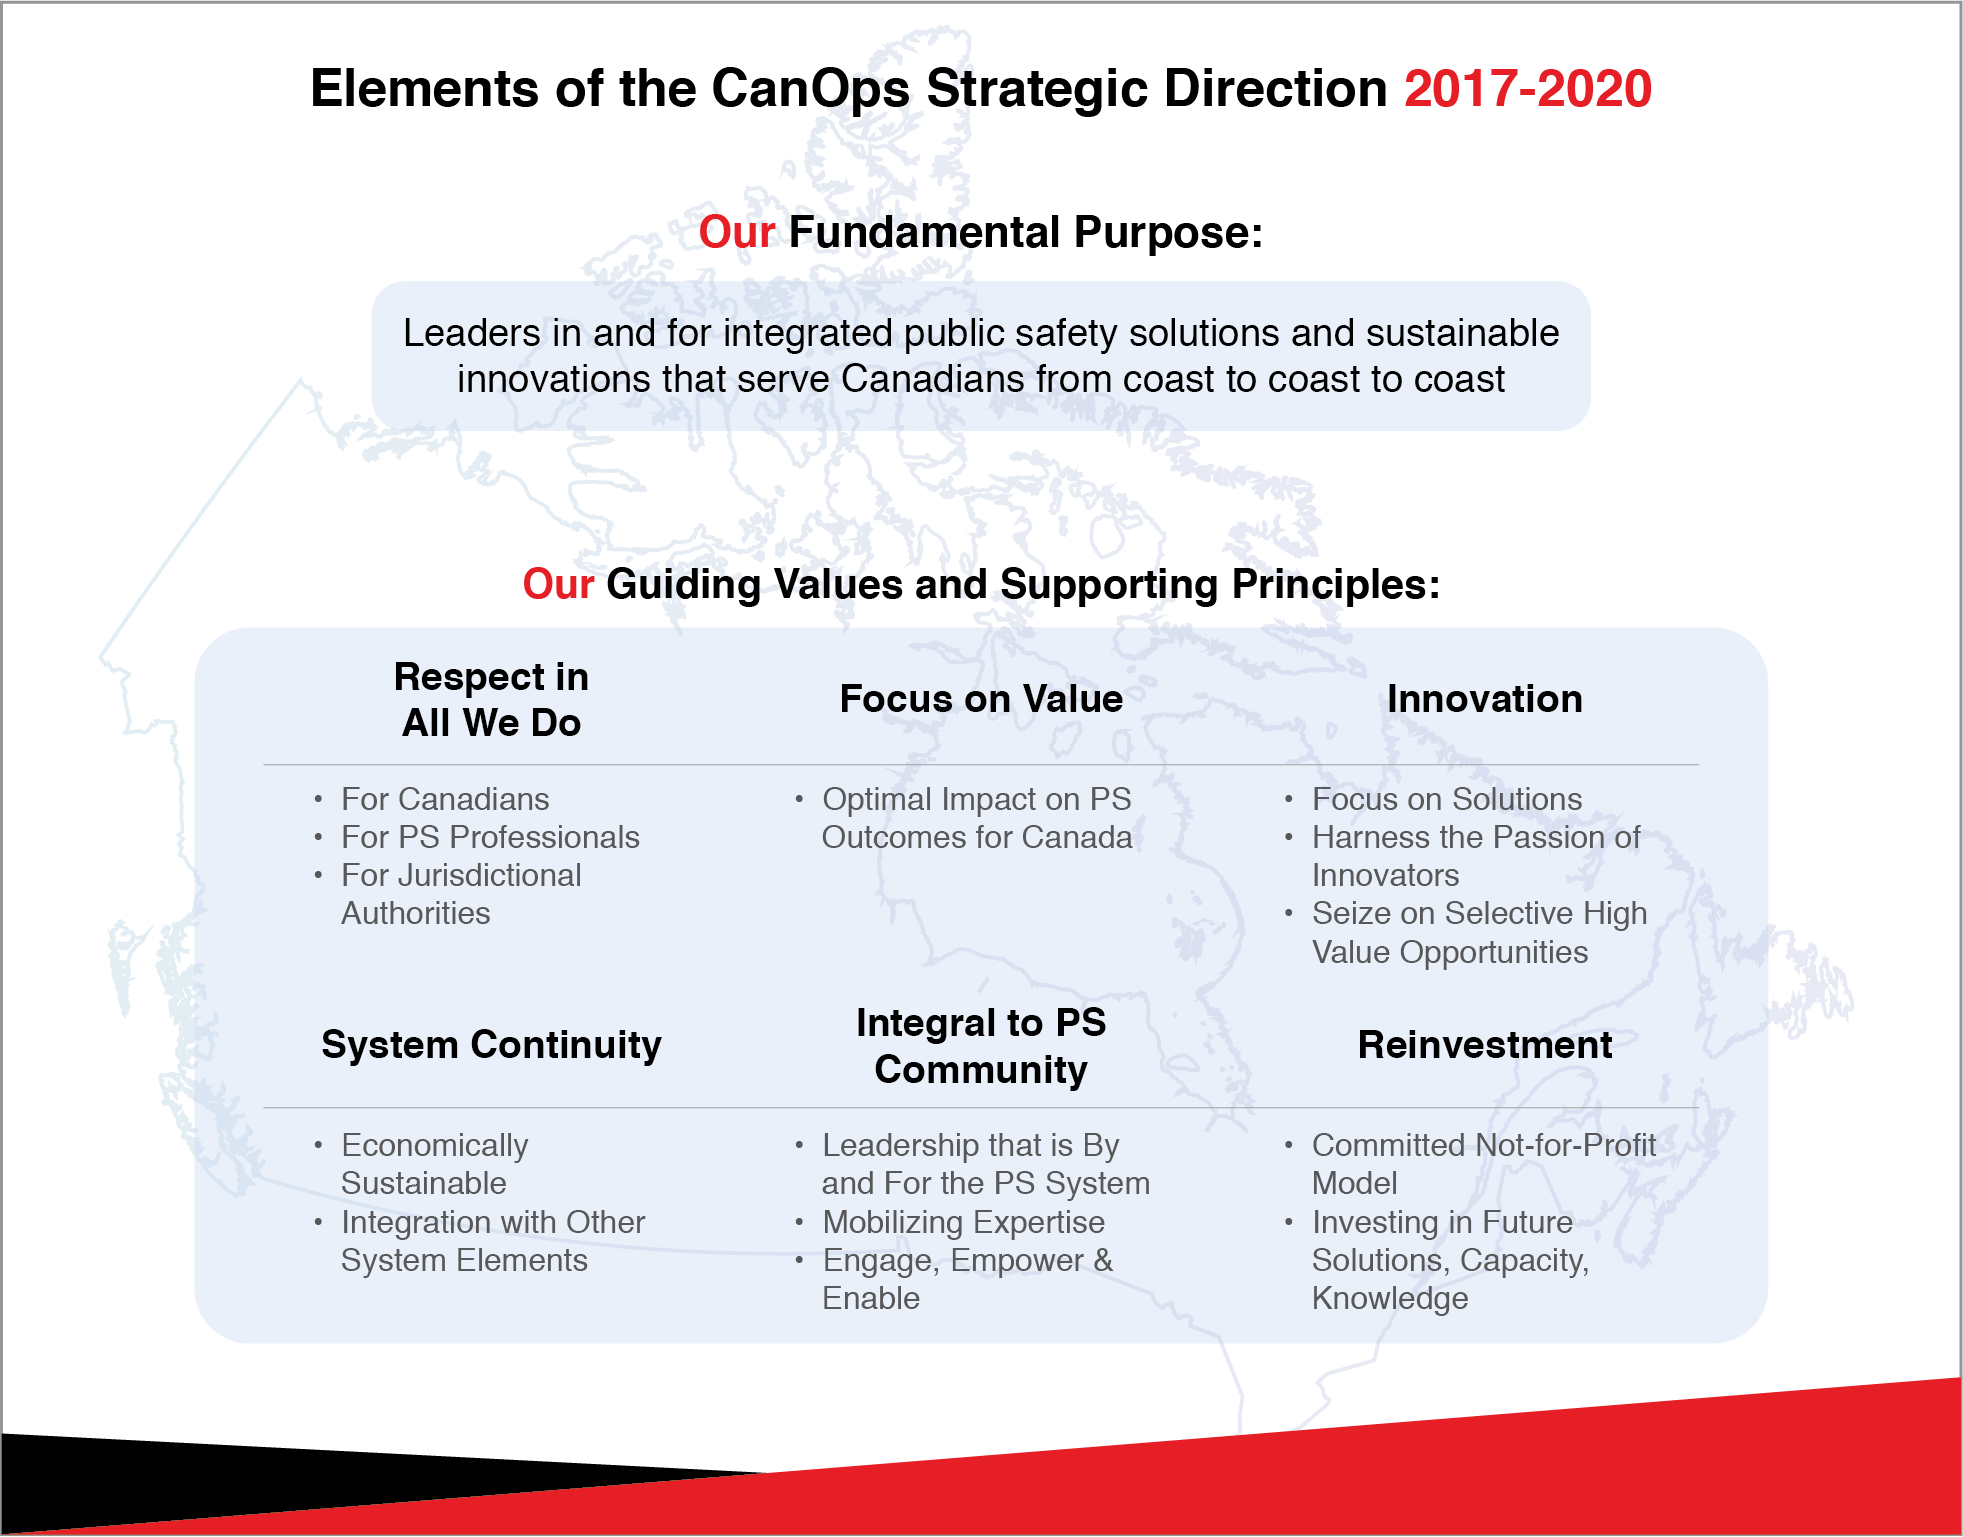 Elements of the CanOps Strategic Direction 2017-2010